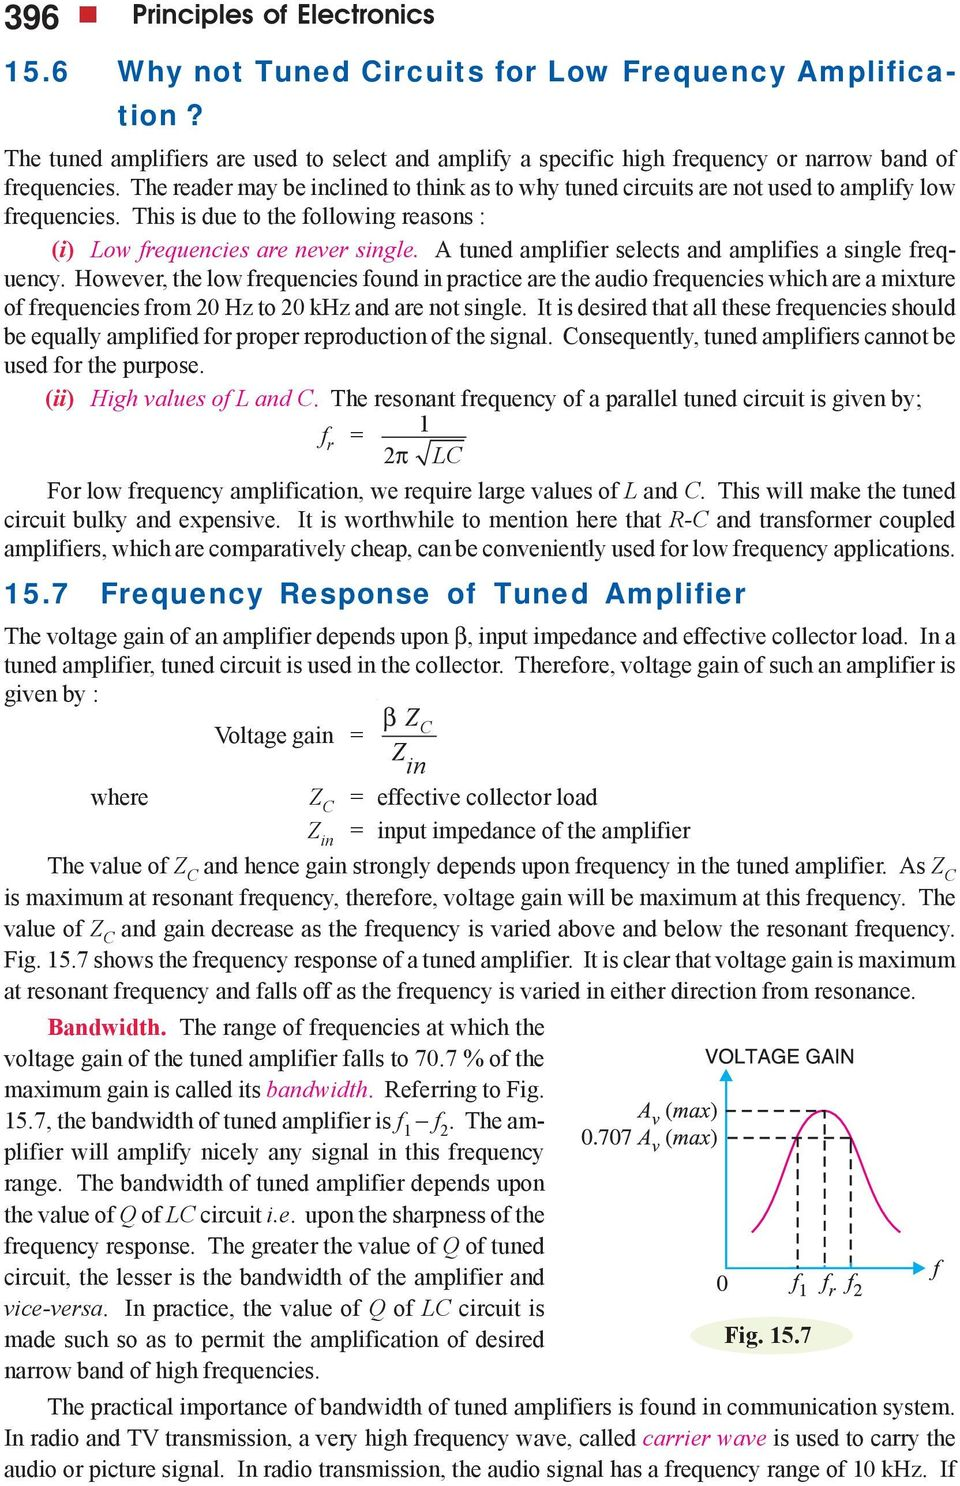 Transistor Tuned Amplifiers Pdf Amplifier Have Over Normal Single Or Multistage A Selects And Amplifies Frequency